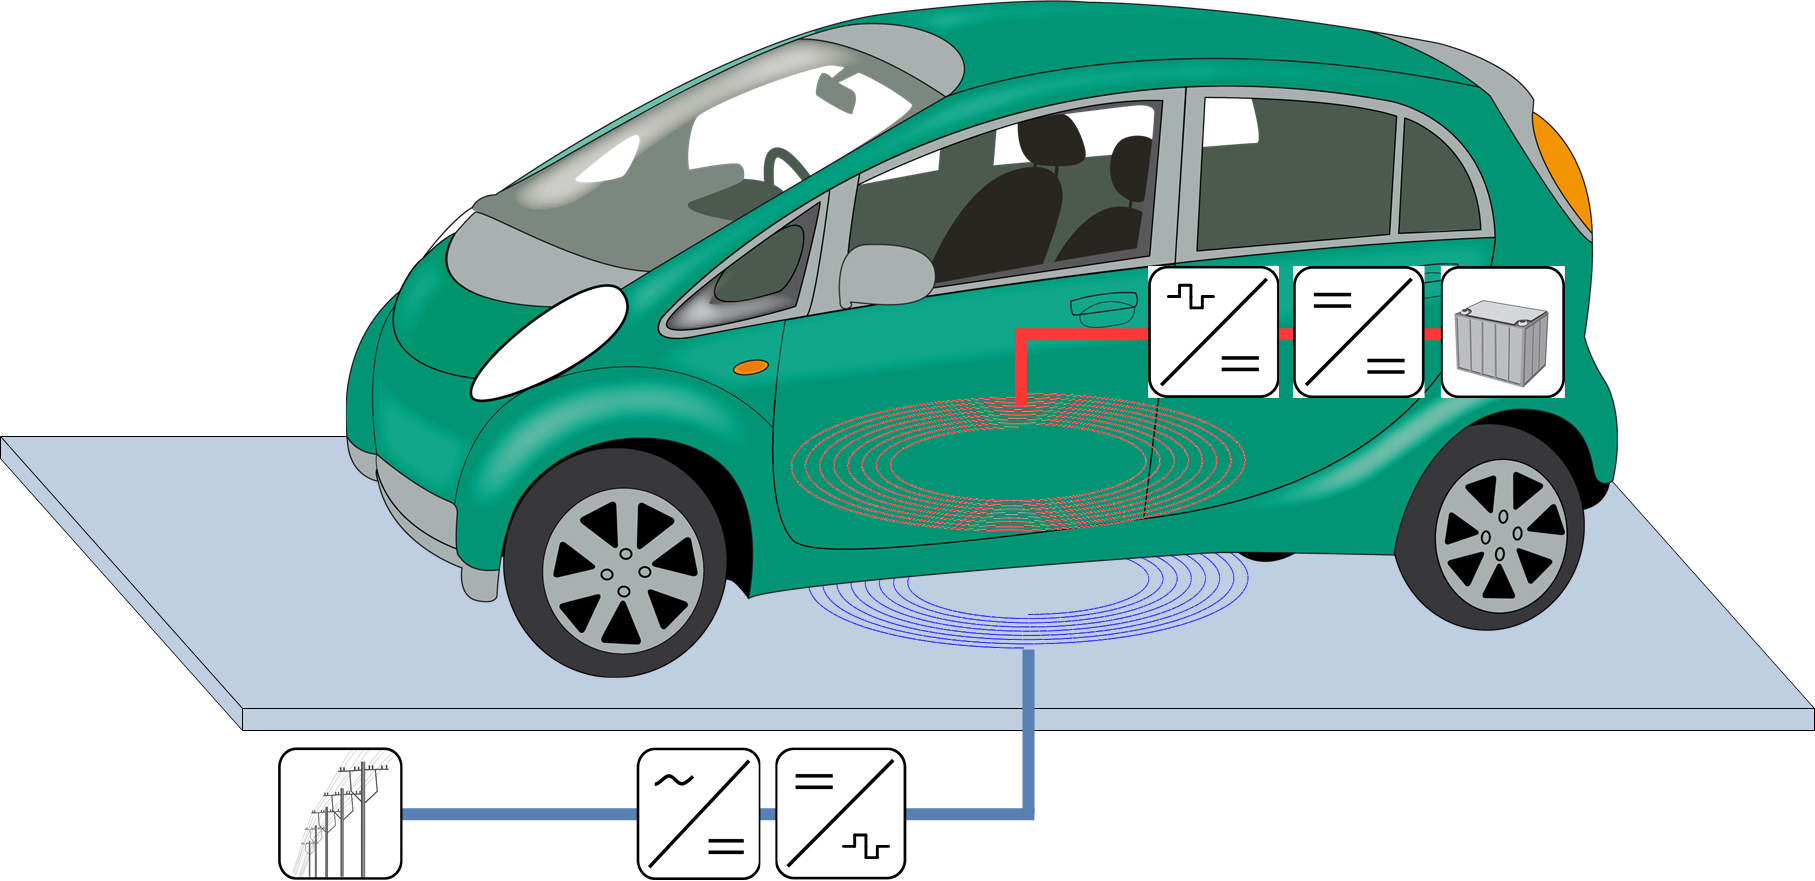 Cables No Longer Needed High Efficiency Inductive Charger Electric Car Schematic Graphics Of An Charging System With Power Converters 053 Mb